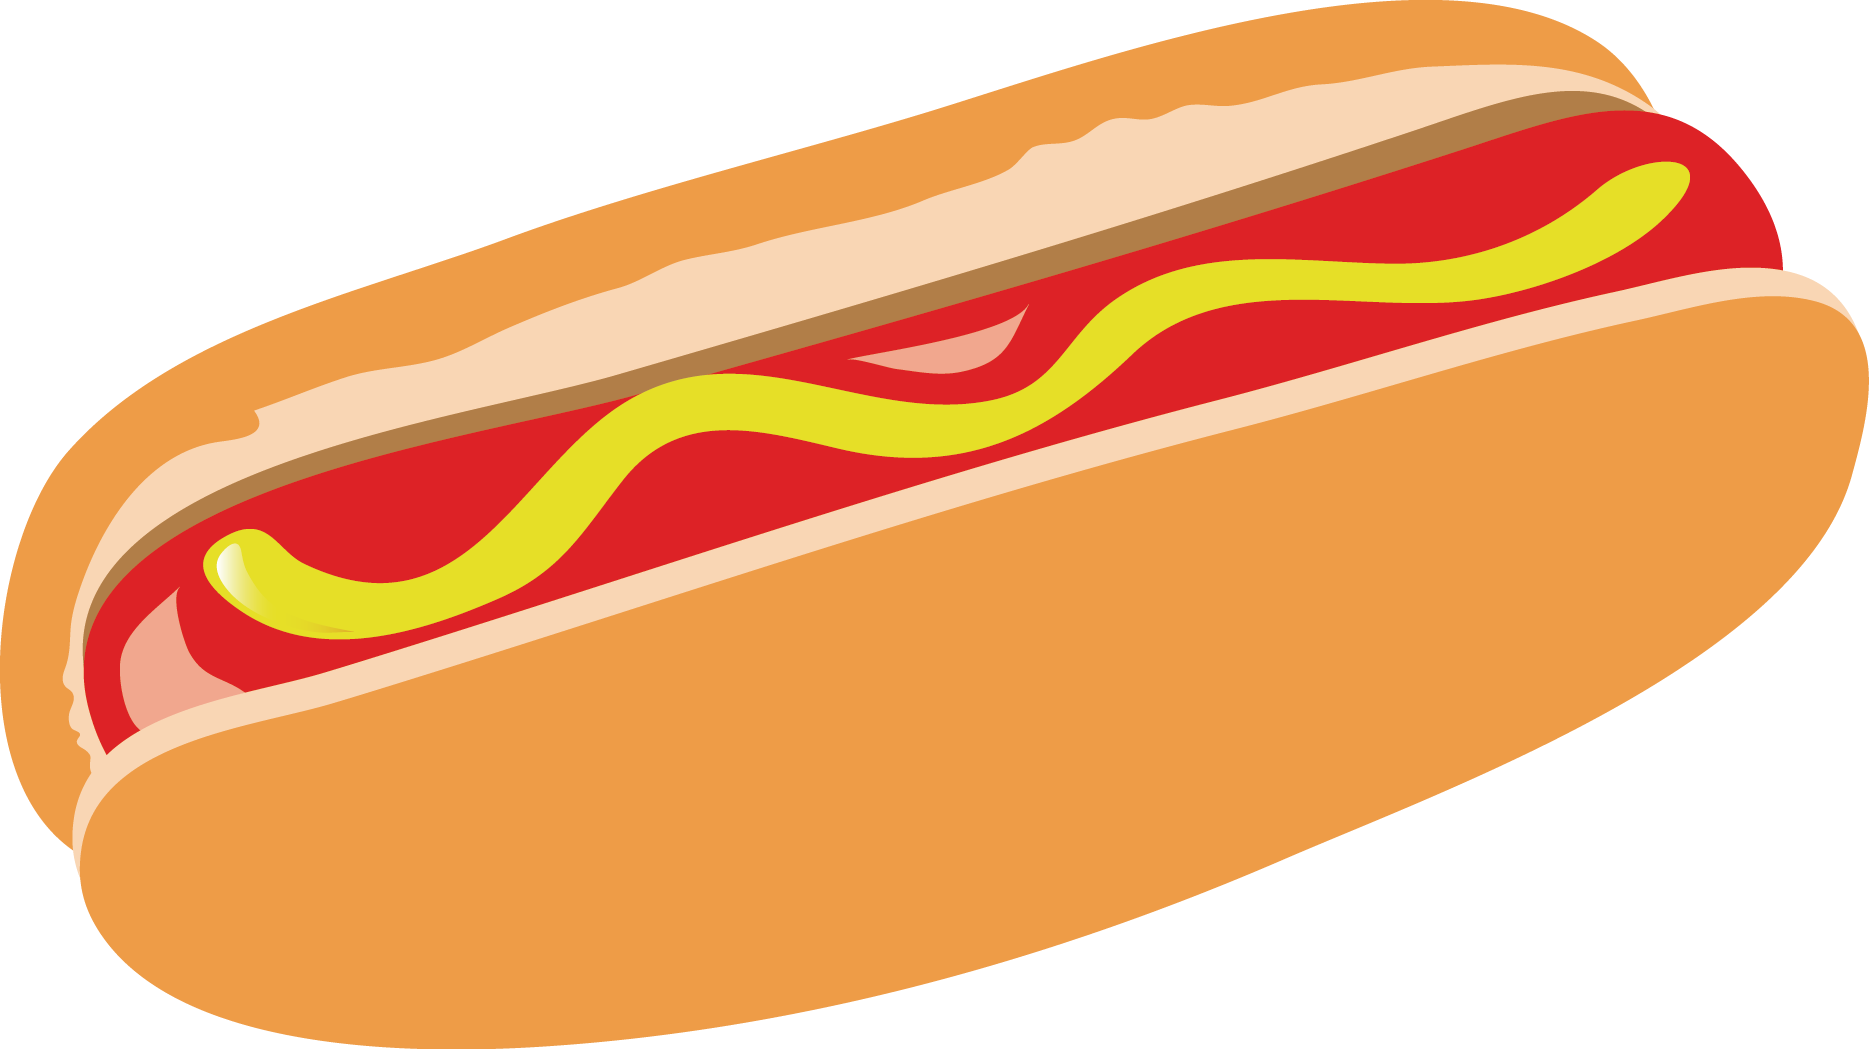 Ham clipart ham dinner. Hot dog breakfast hamburger